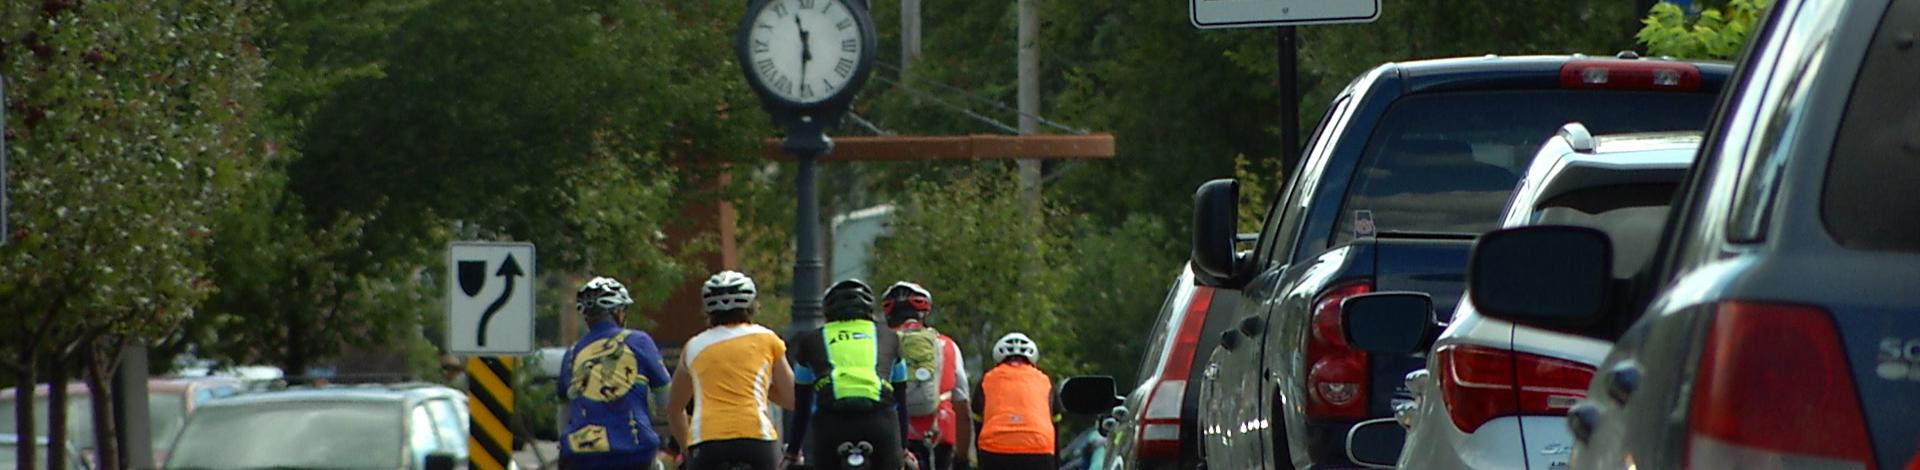 Downtown Okotoks with clock and urban cyclists